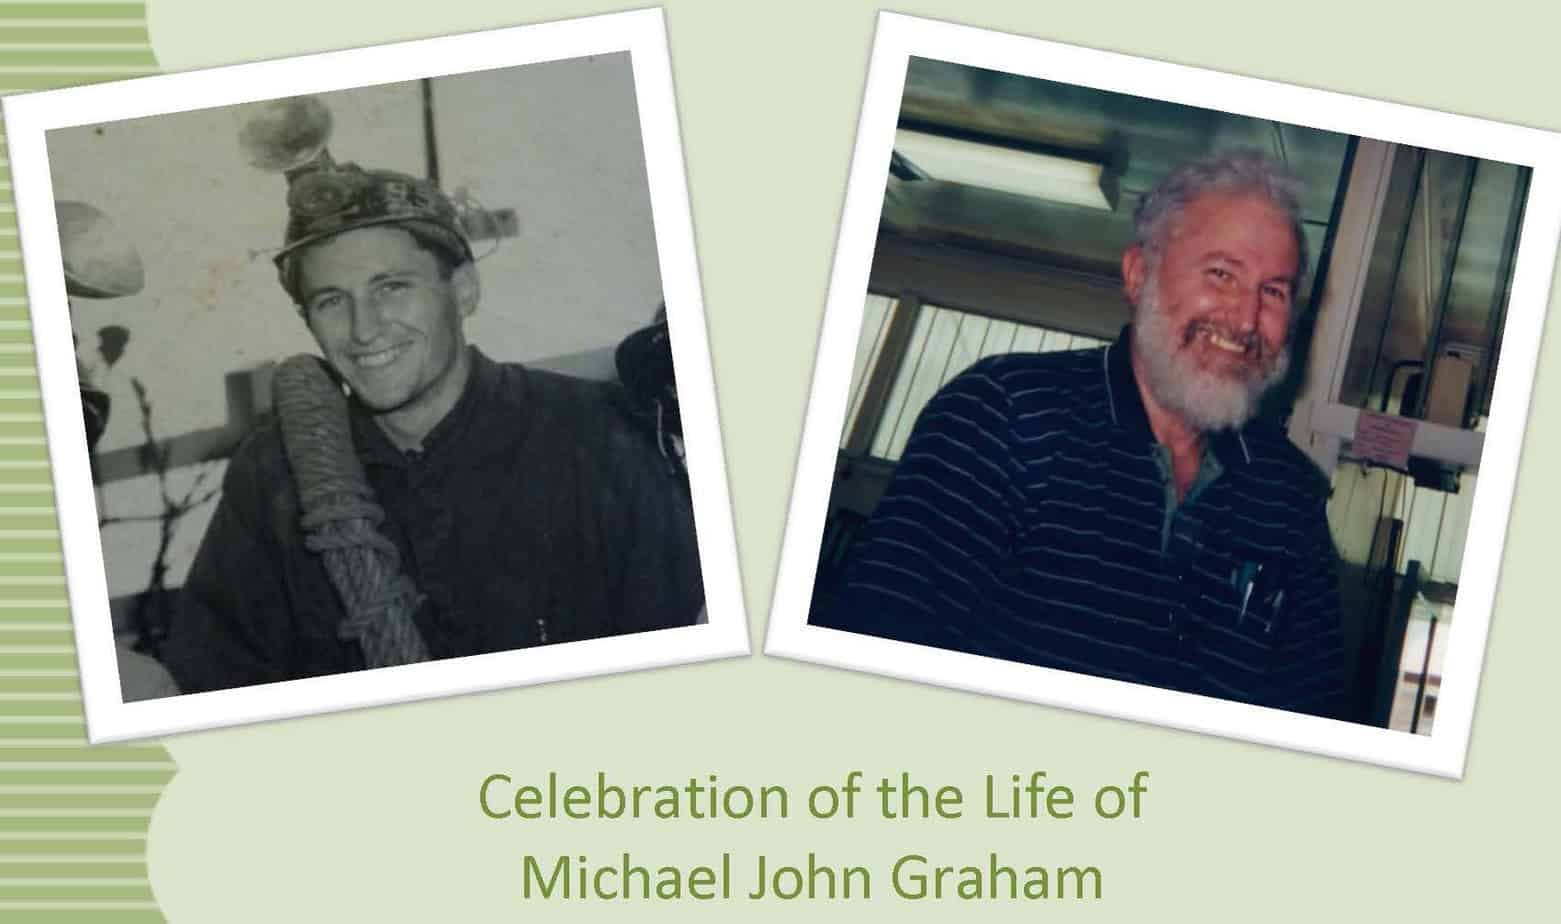 Celebration of the Life of Michael John Graham